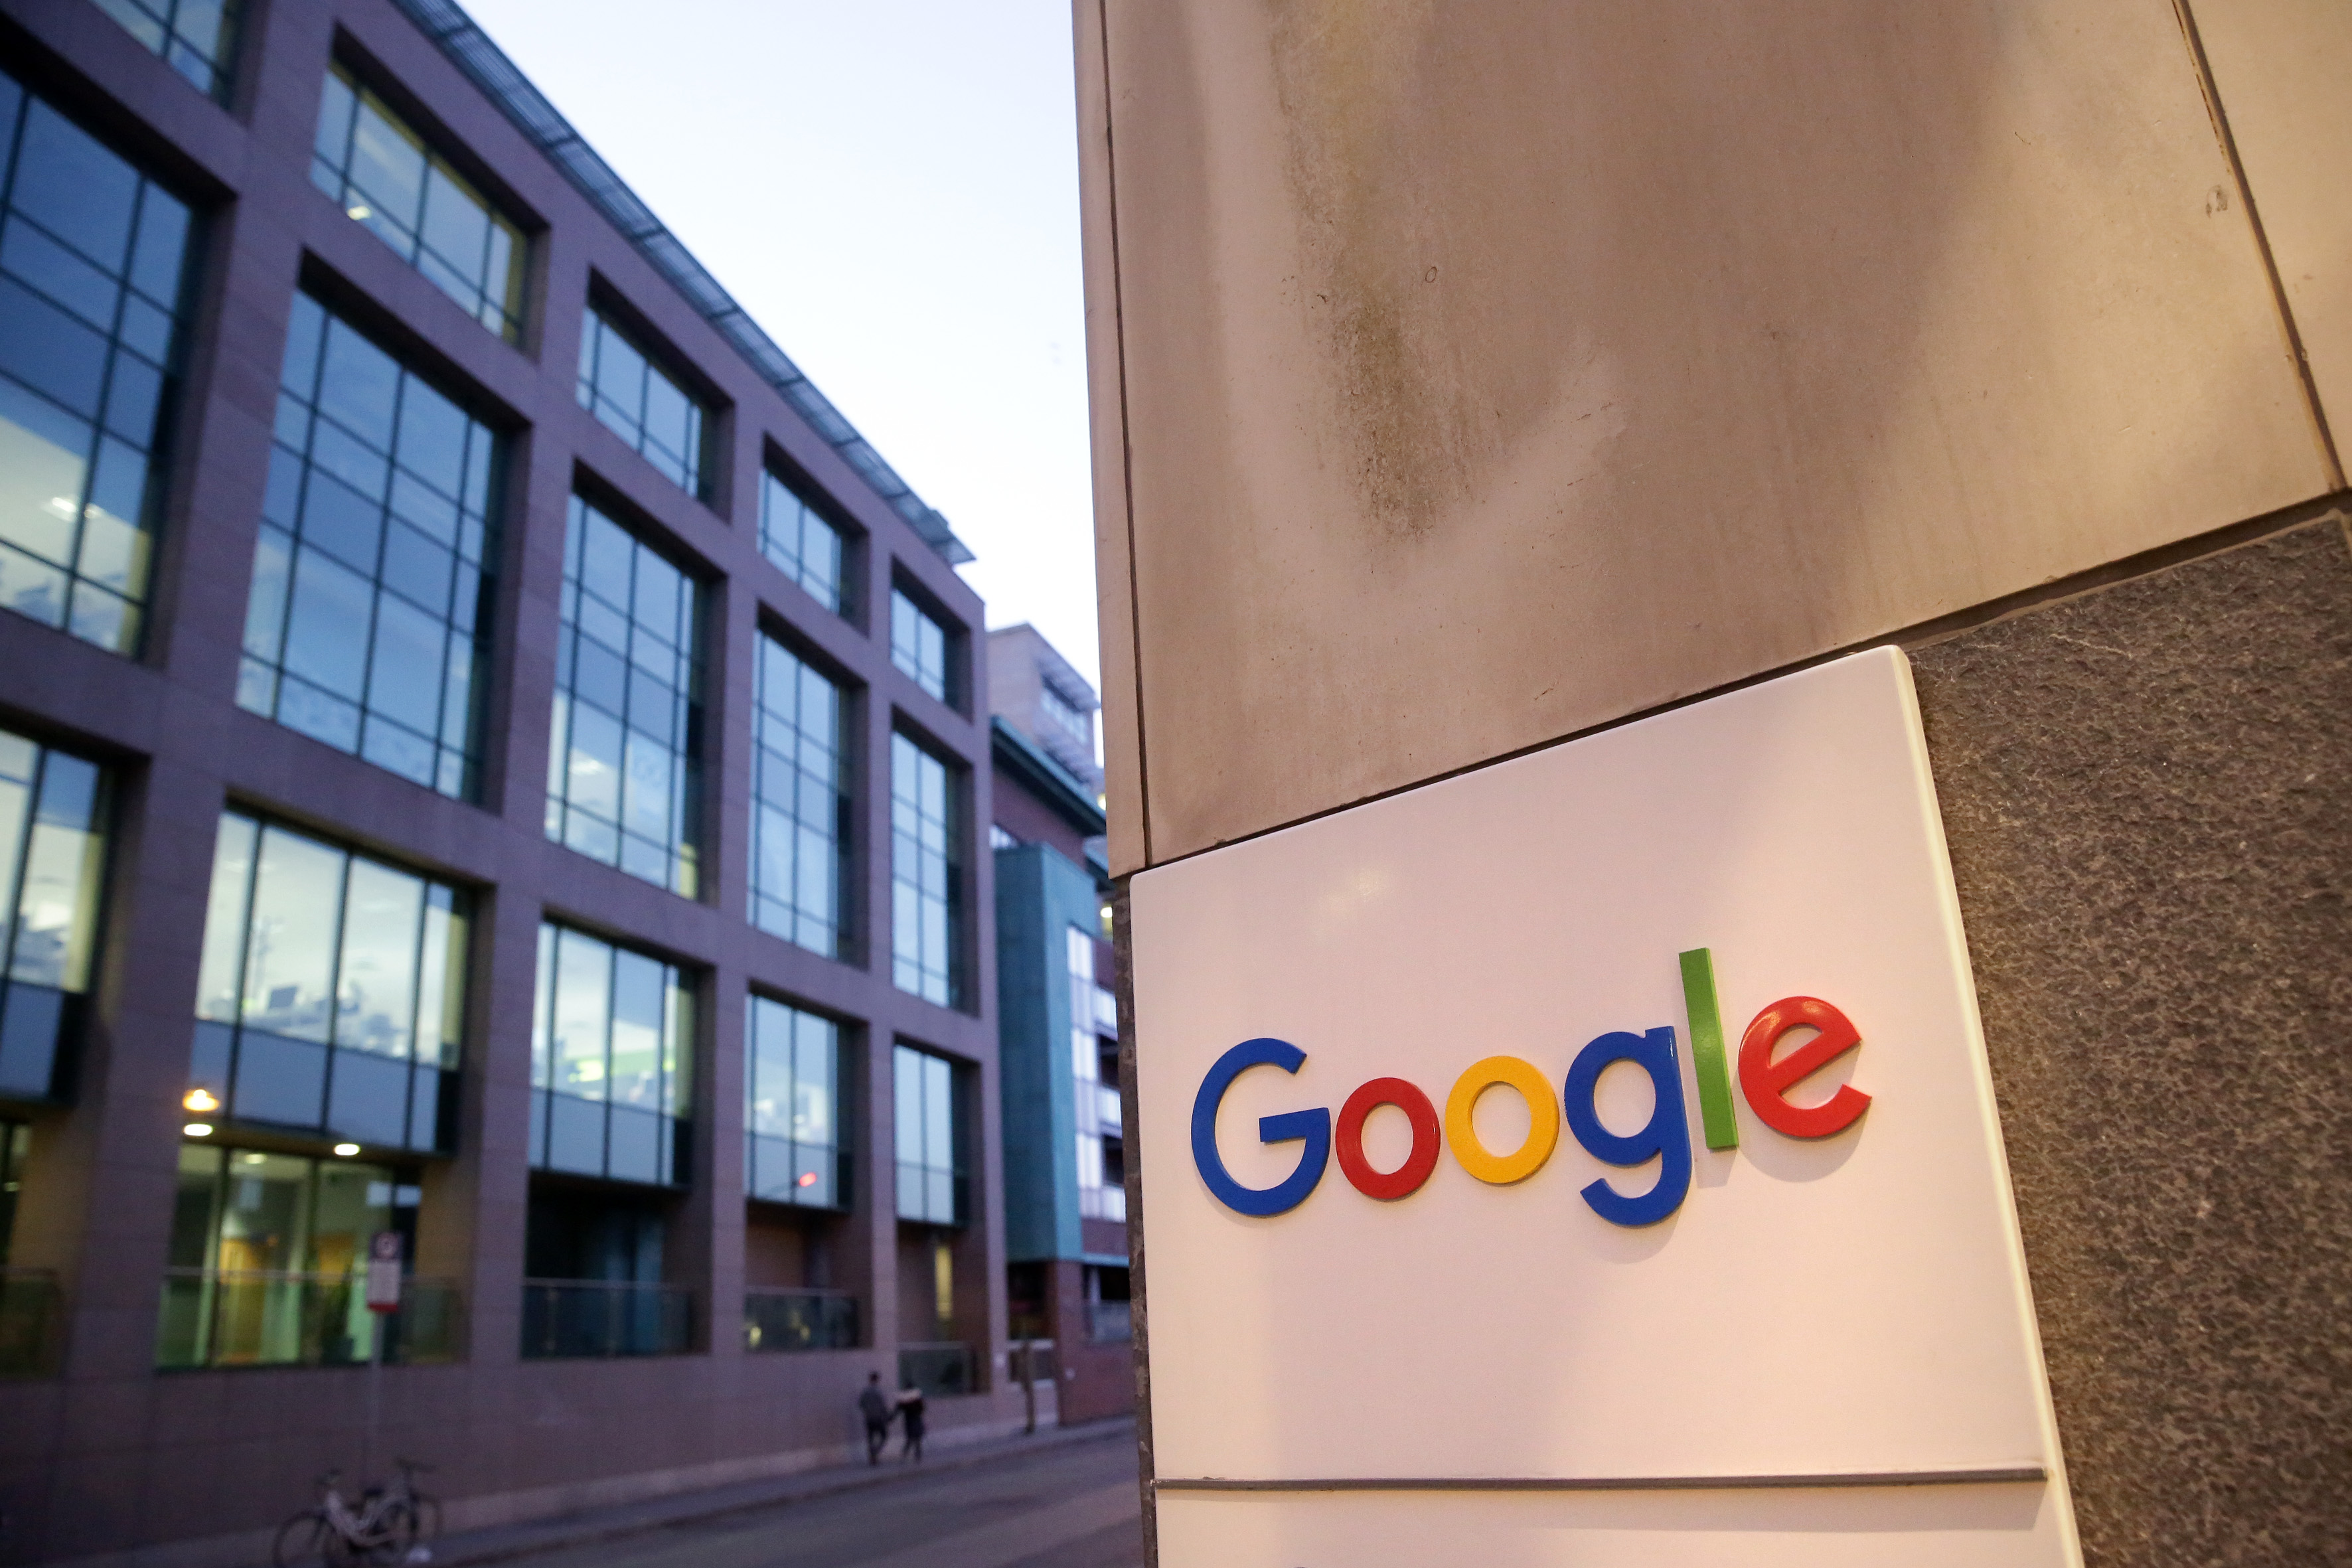 Google surpassed Apple to become the largest company in the world by market capitalization.